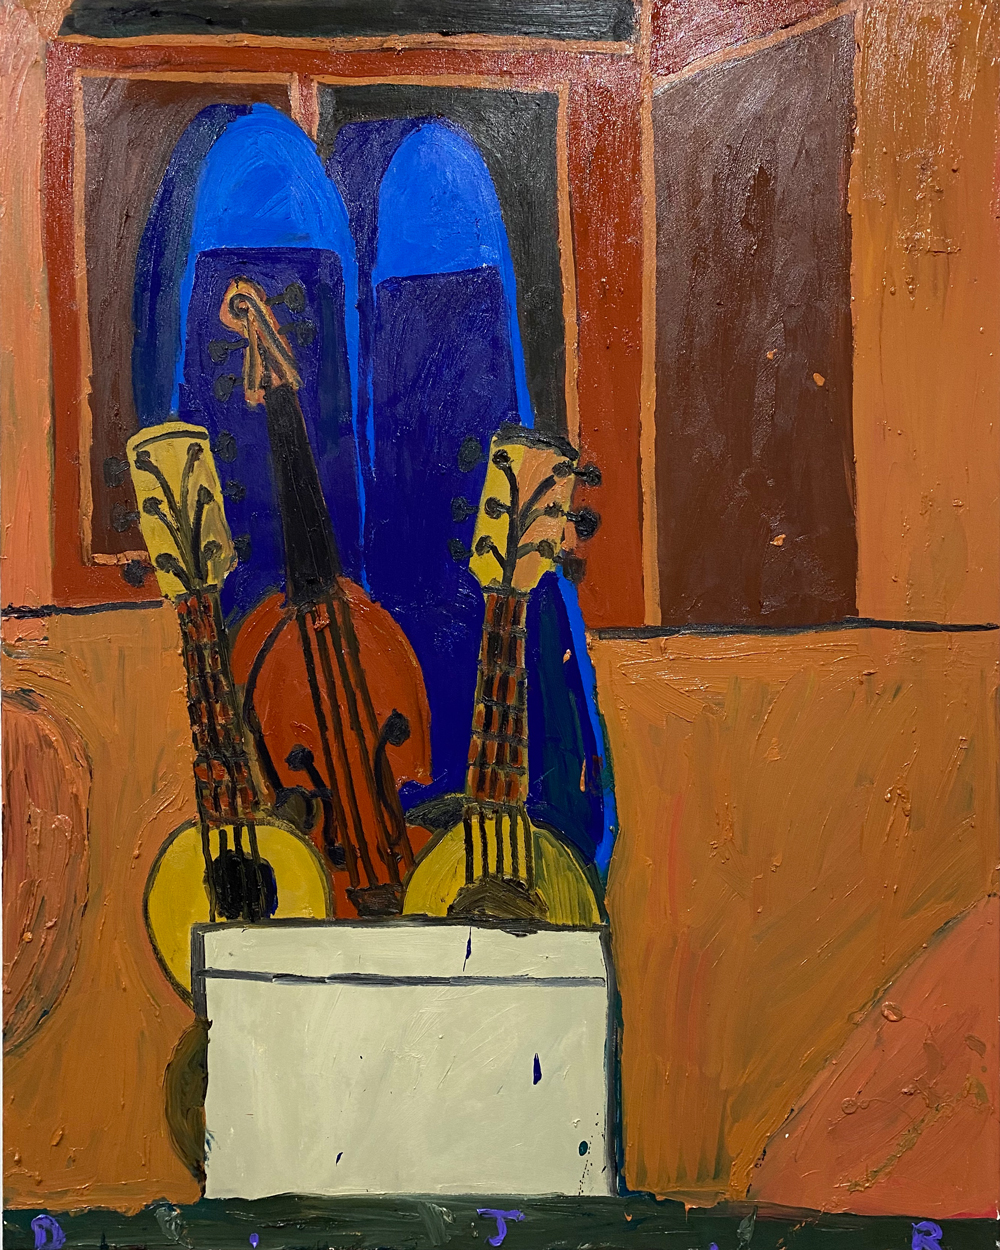 Danny-Romeril-Antique-Shop-Instruments-2020-Oil-on-canvas-120-x-150-cm